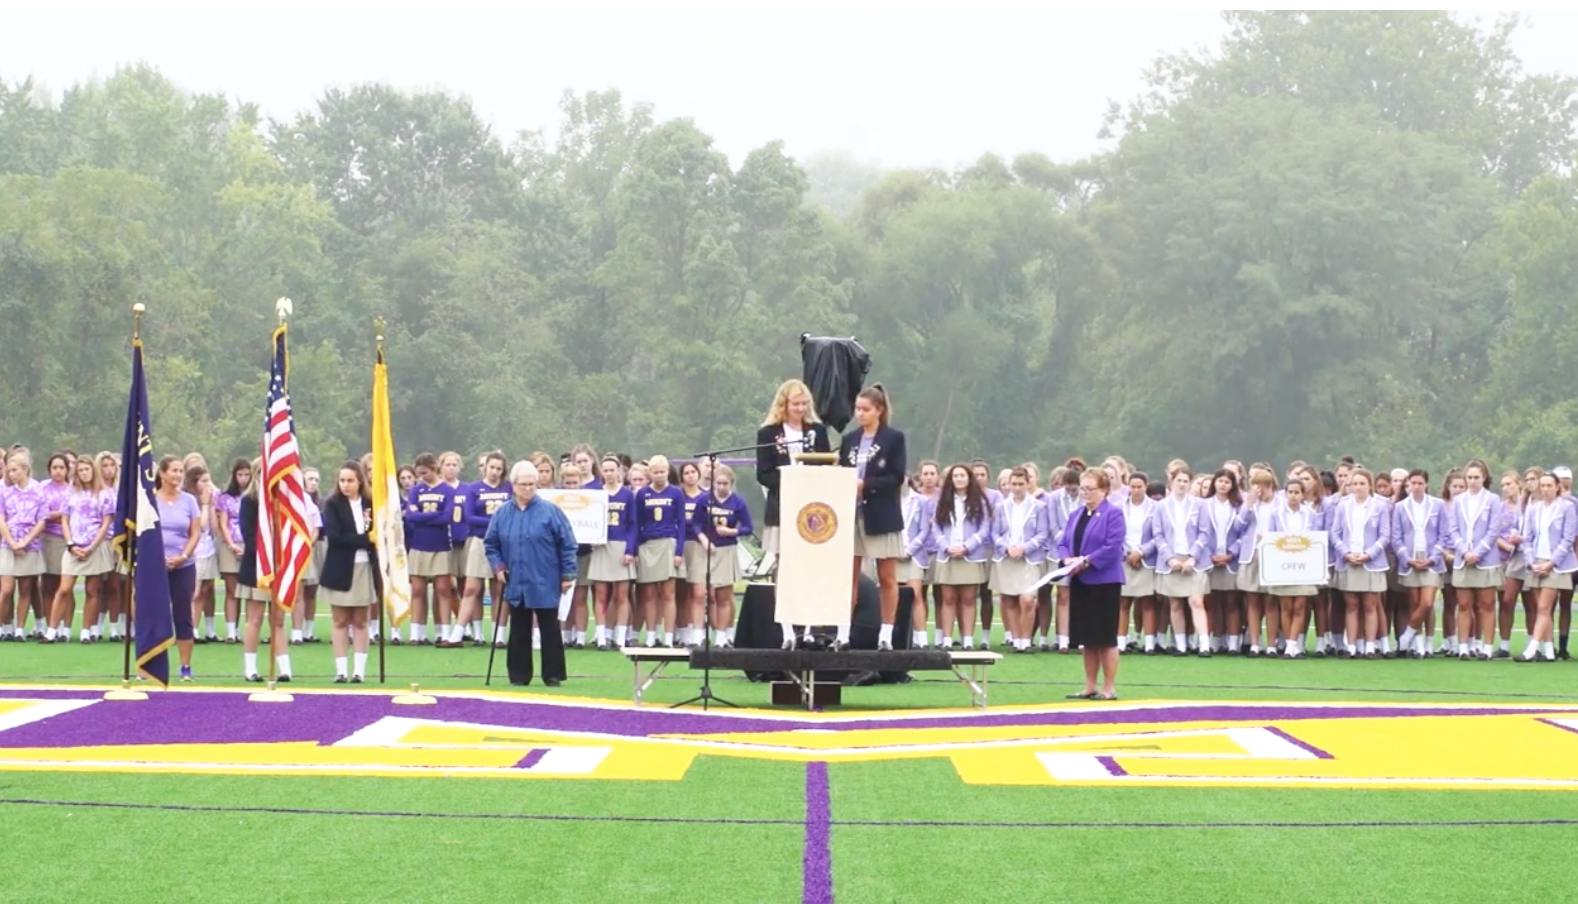 Multipurpose Turf Field Blessing